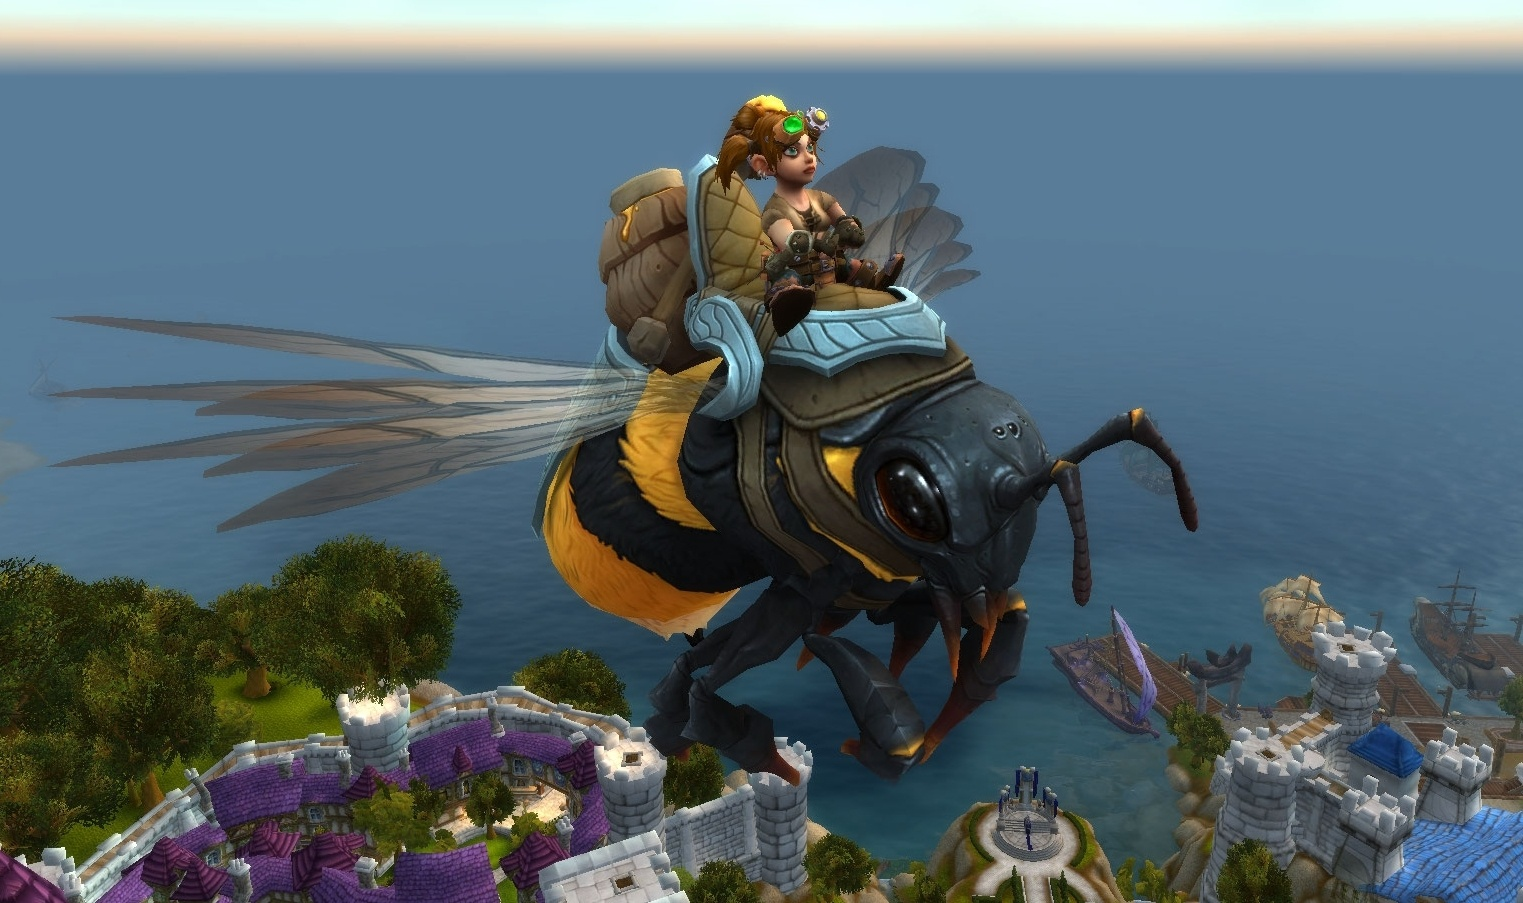 WoW BFA Mount Boost Honeyback Harvester Flying Mount Exalted Reputation Leveling